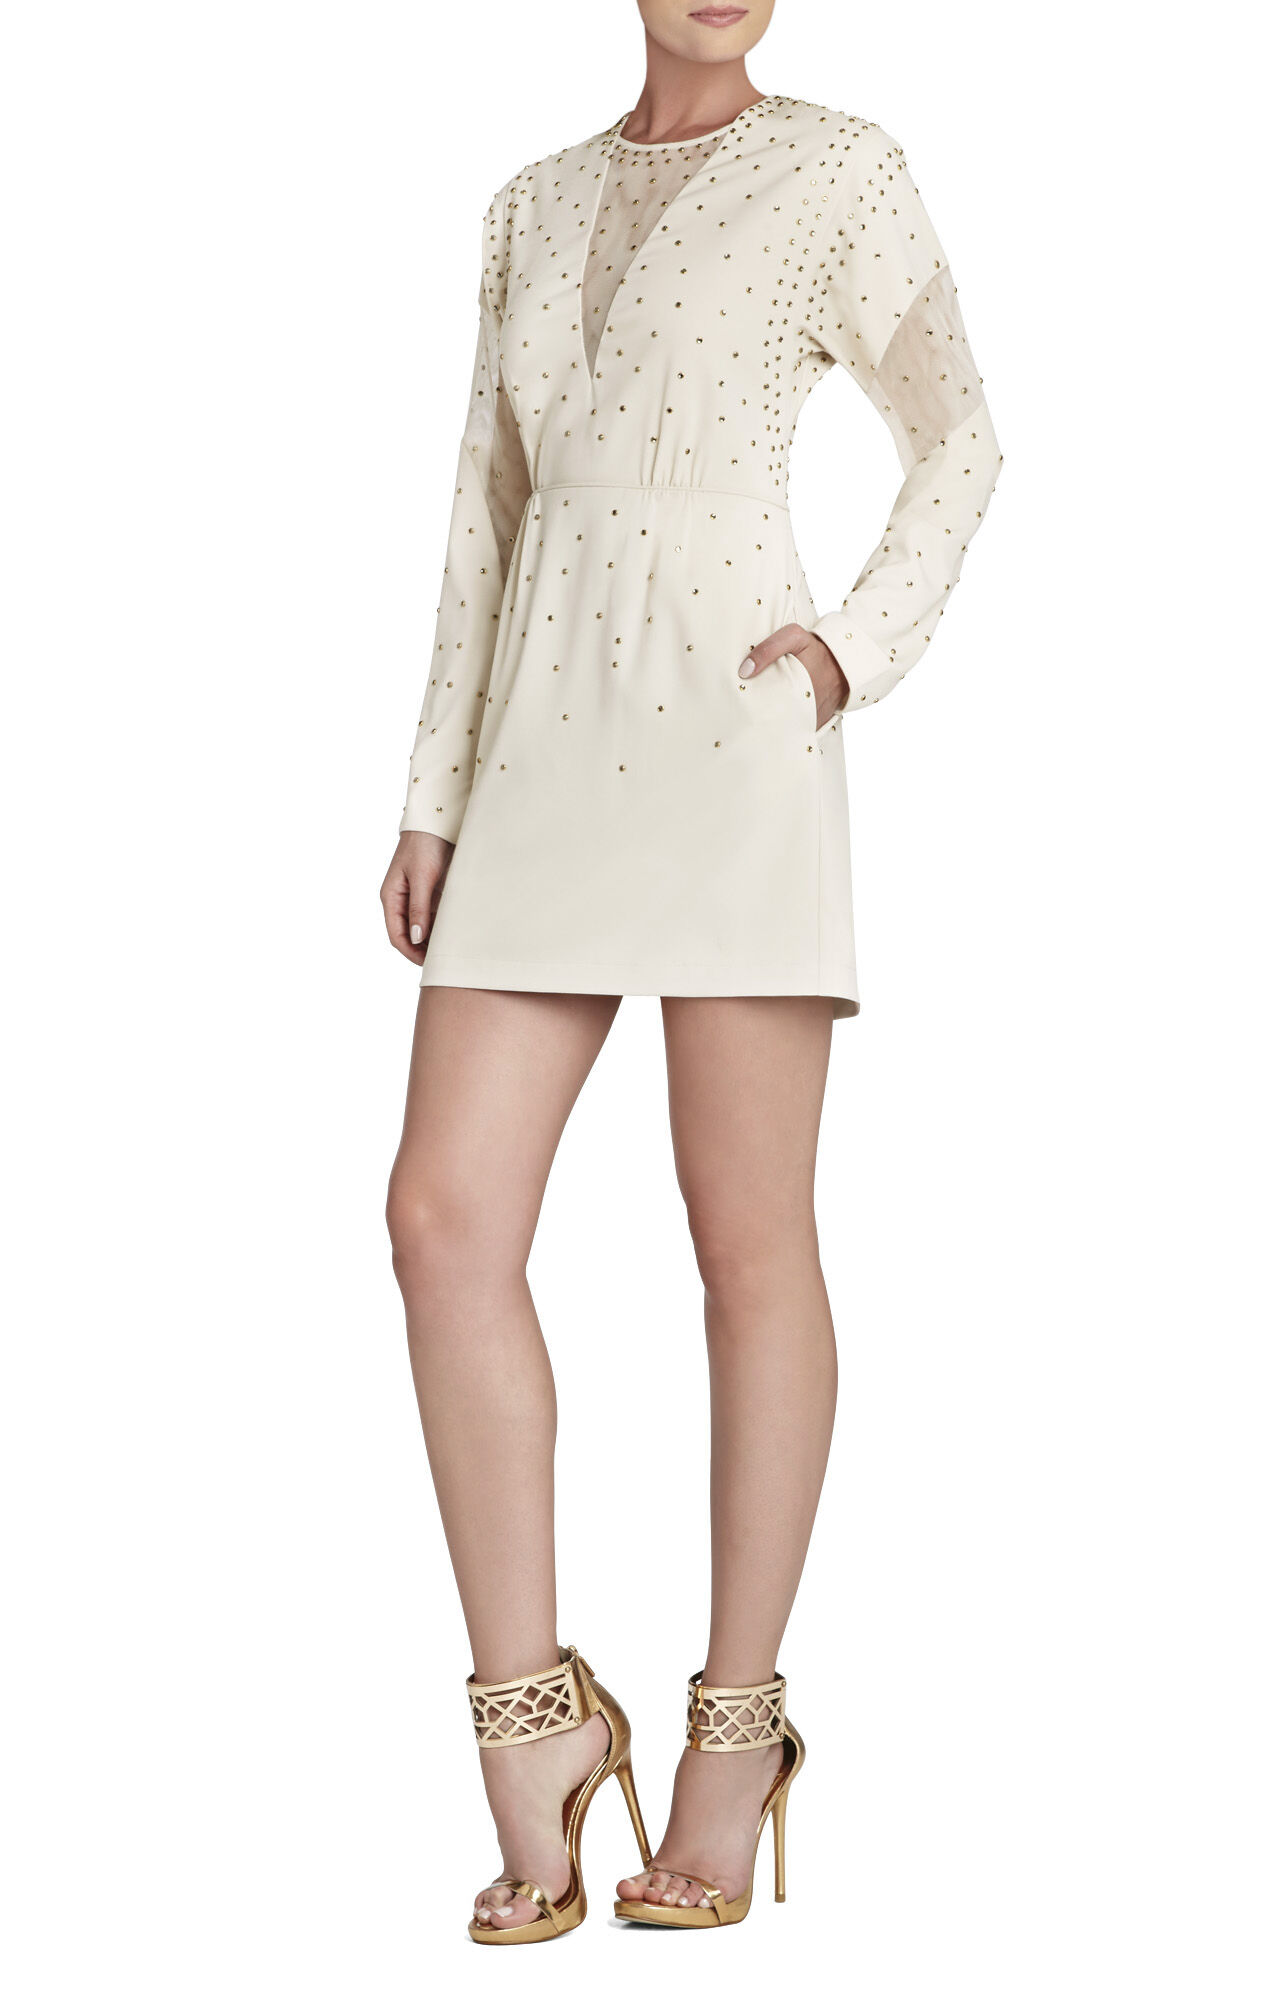 Lake Rhinestone-Applique Cocktail Dress